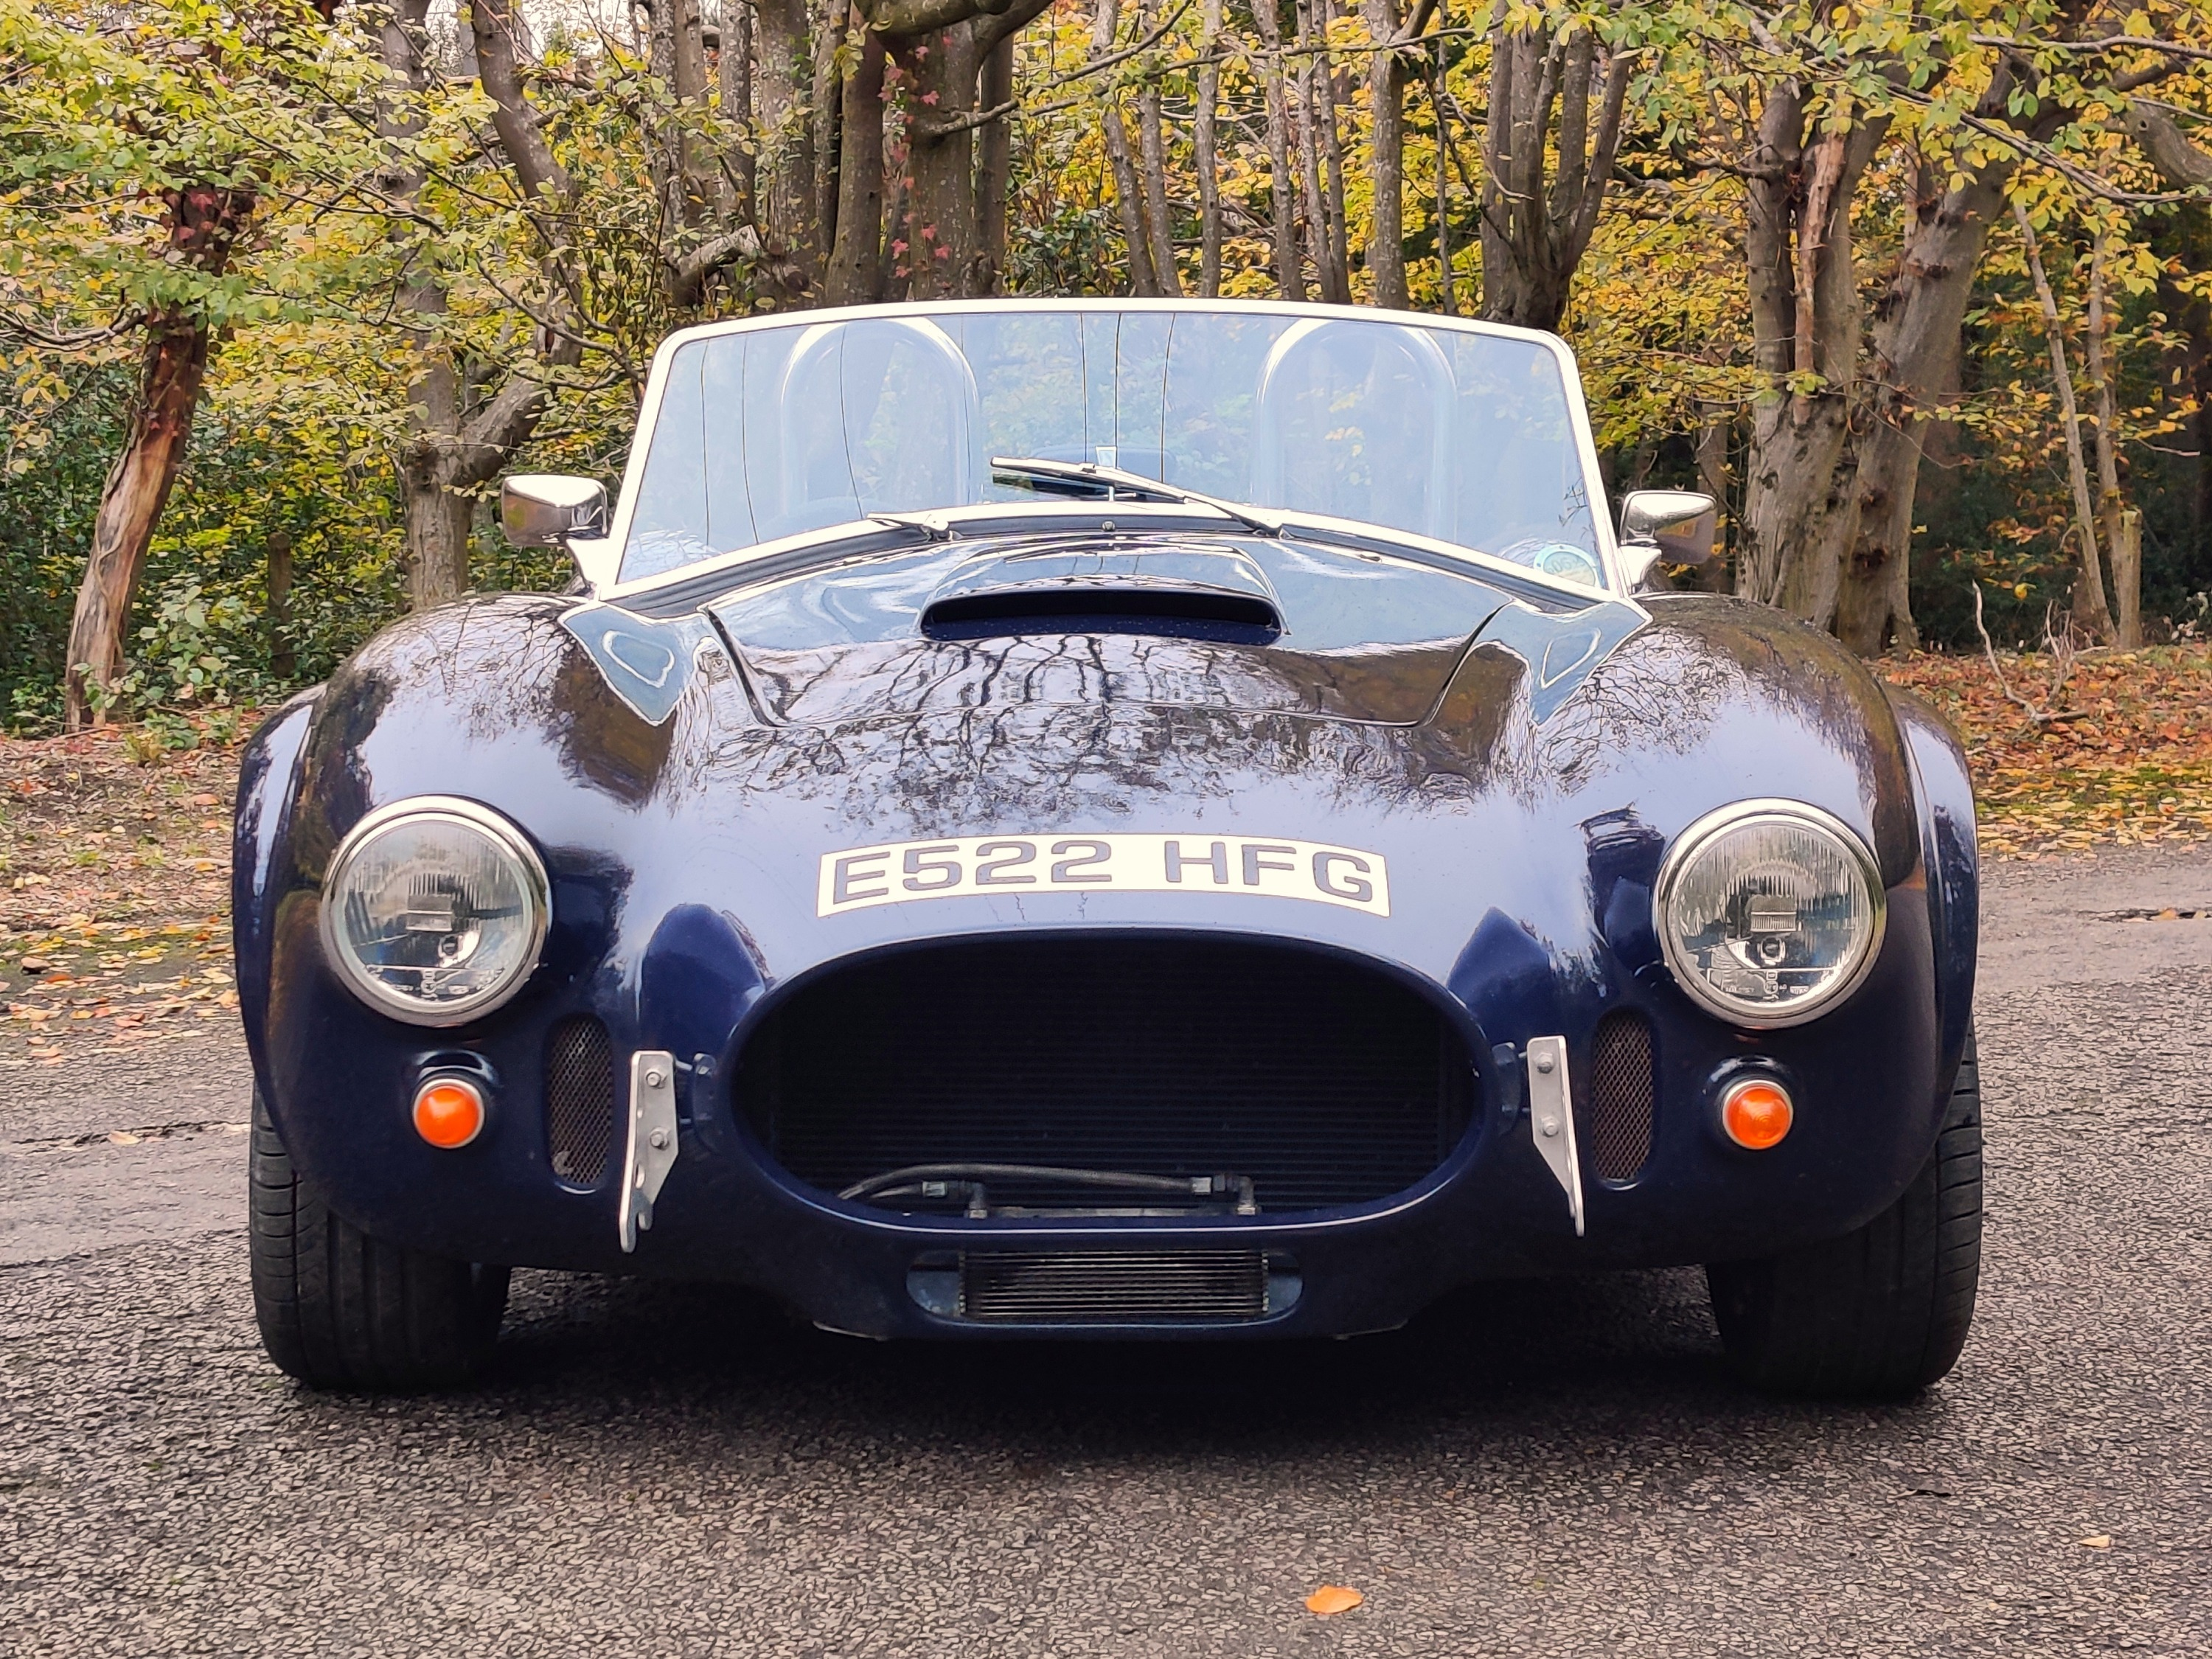 AC_COBRA_FOR_HIRE